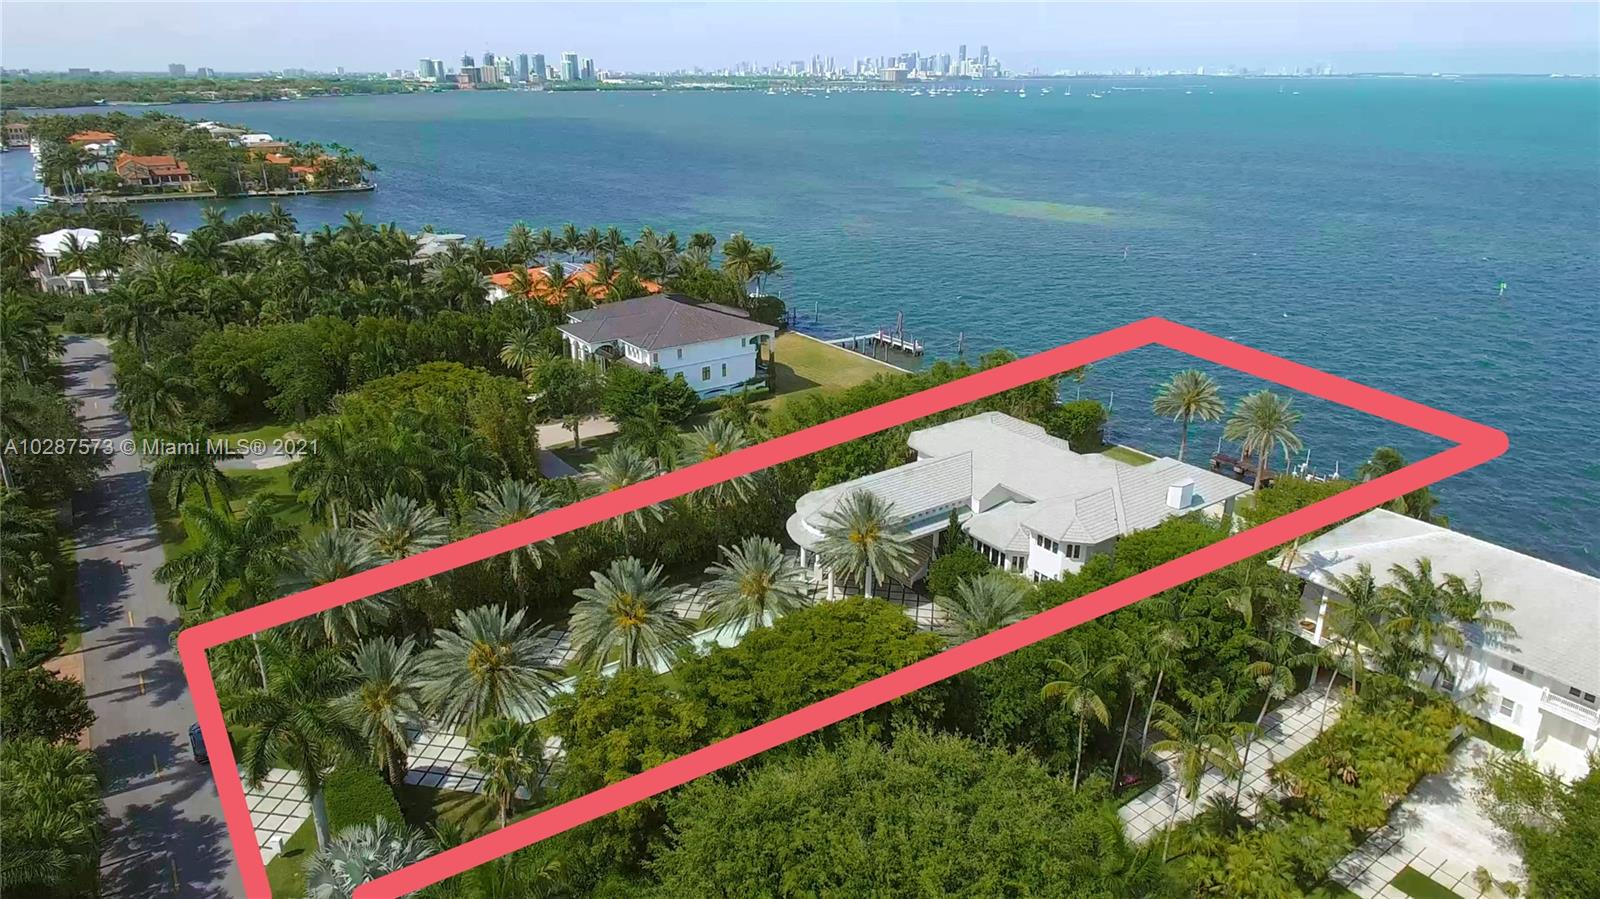 12 Tahiti Beach Island Rd, South Miami Ocean View for Sale